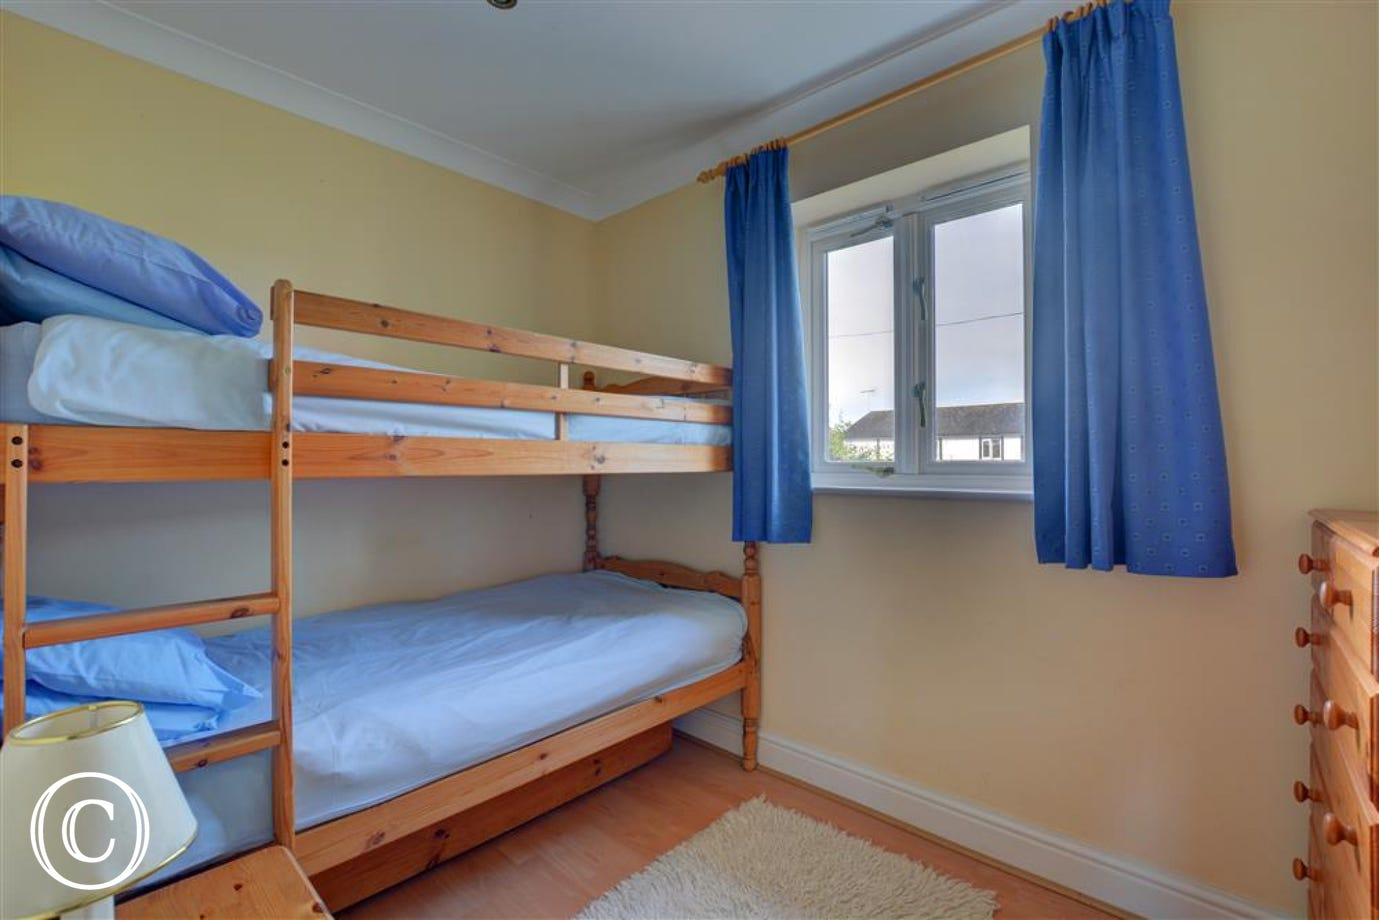 Bedroom three has full sized bunk beds